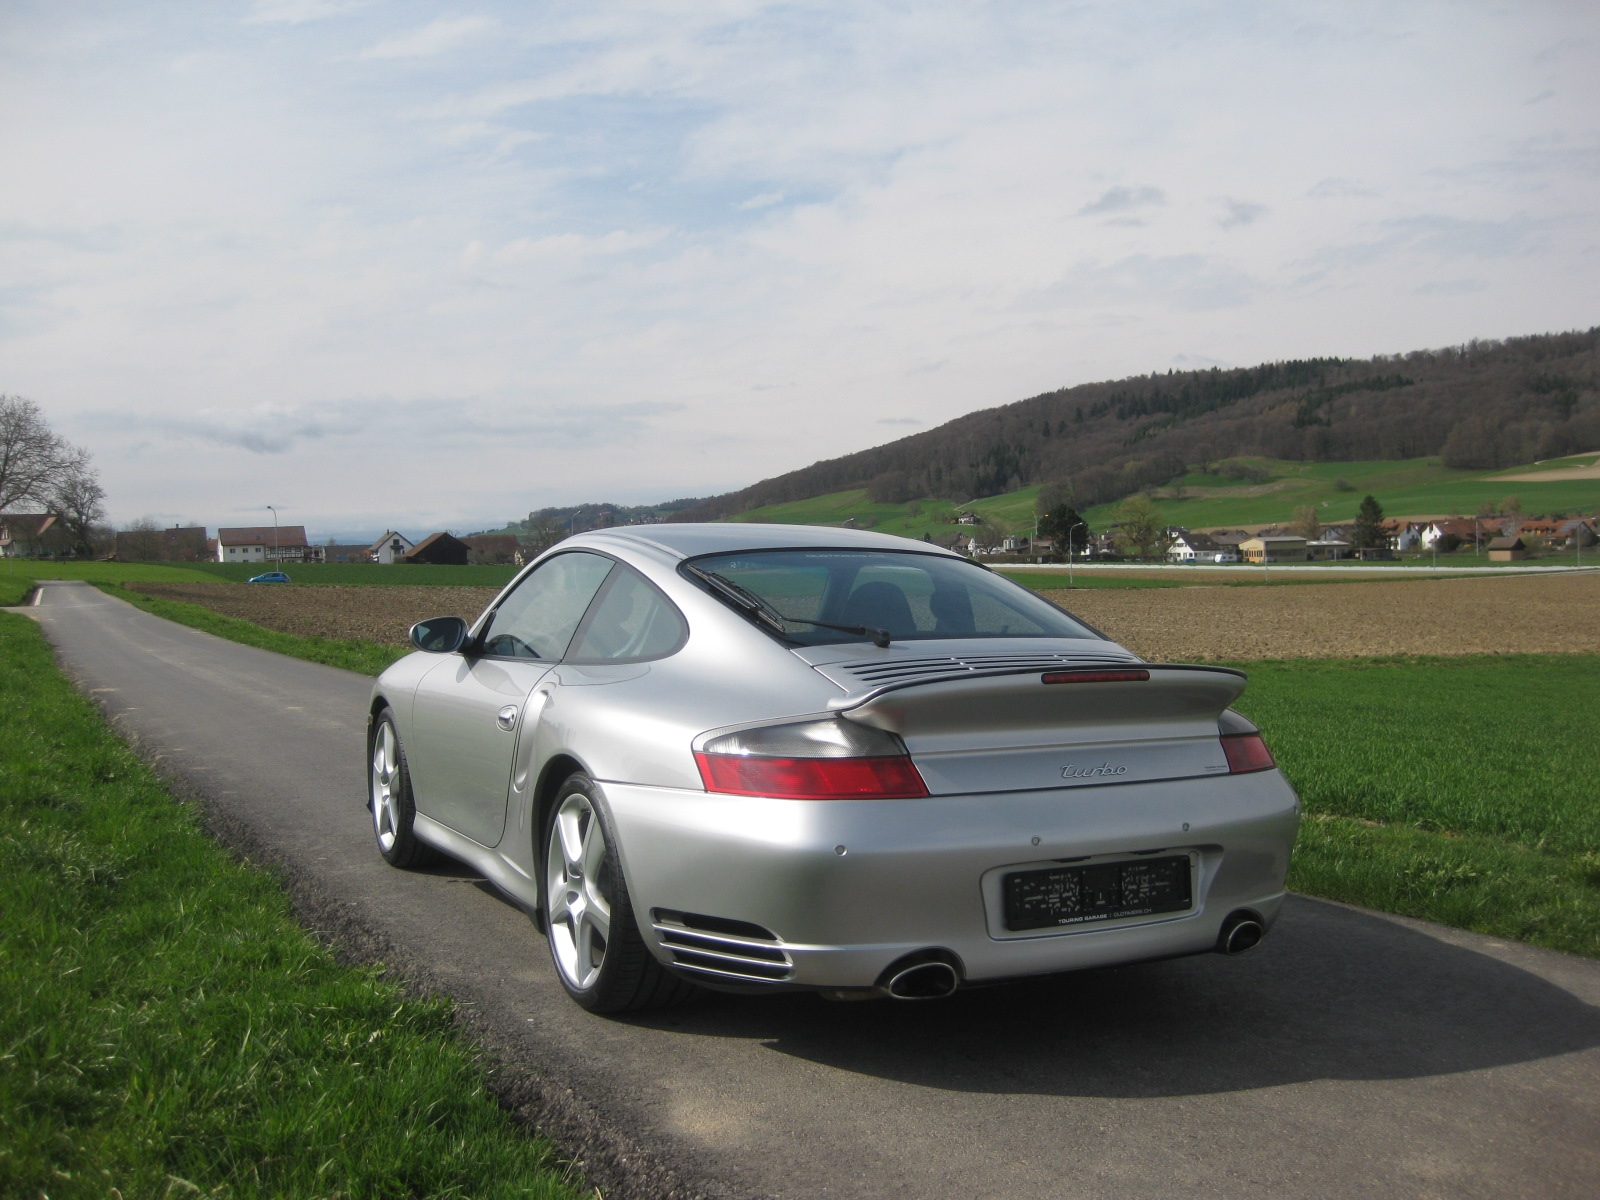 Porsche 911 Turbo Coupé